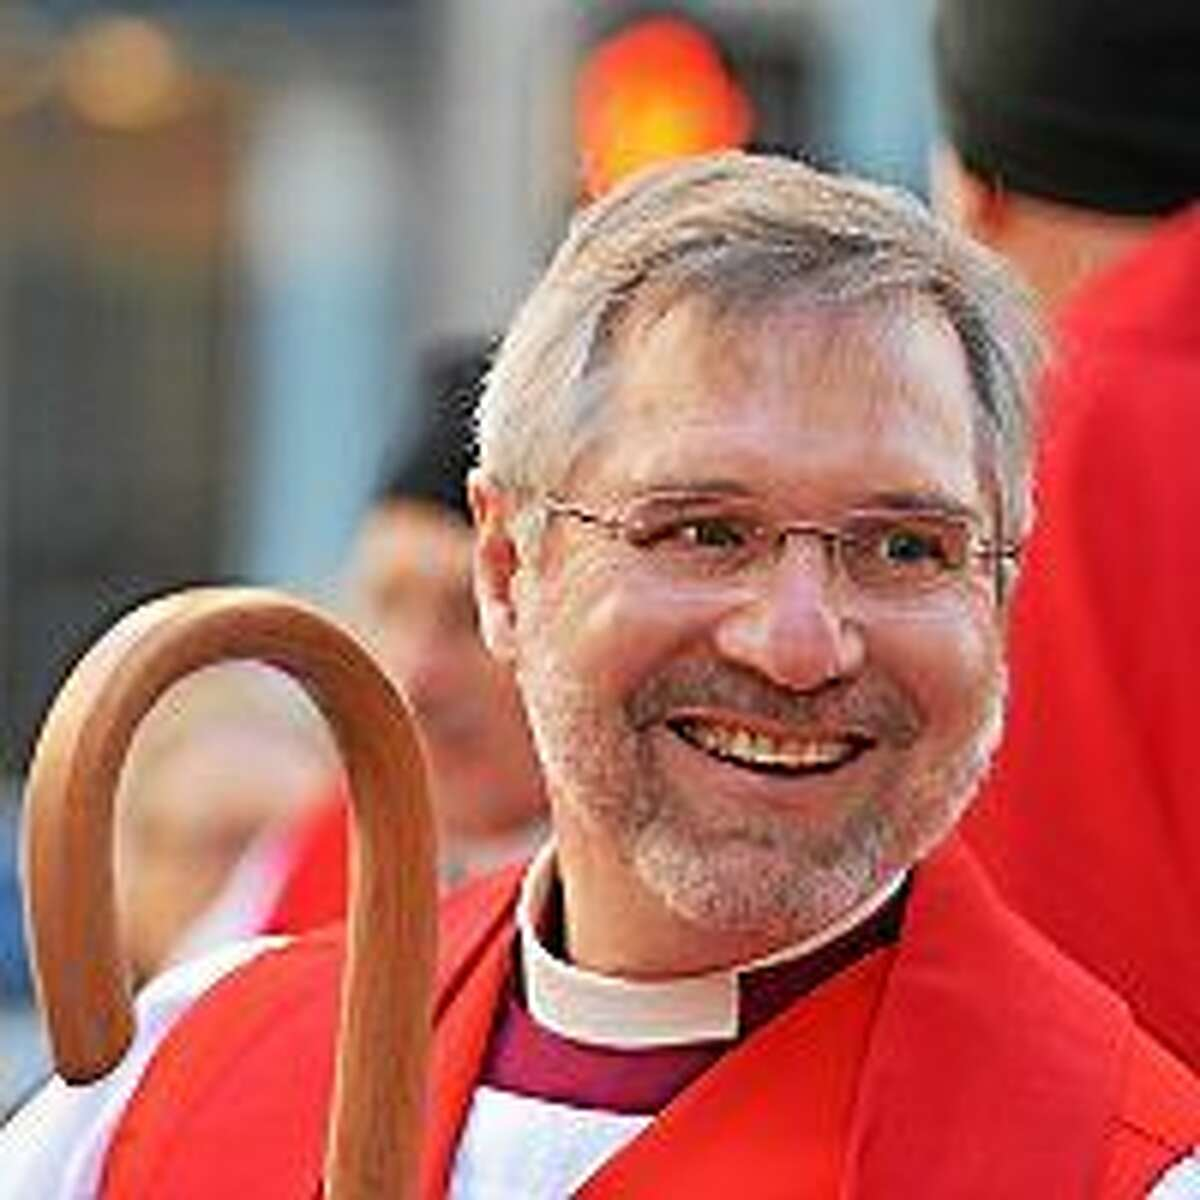 Bishop Ian Douglas of the Episcopal Diocese of Connecticut